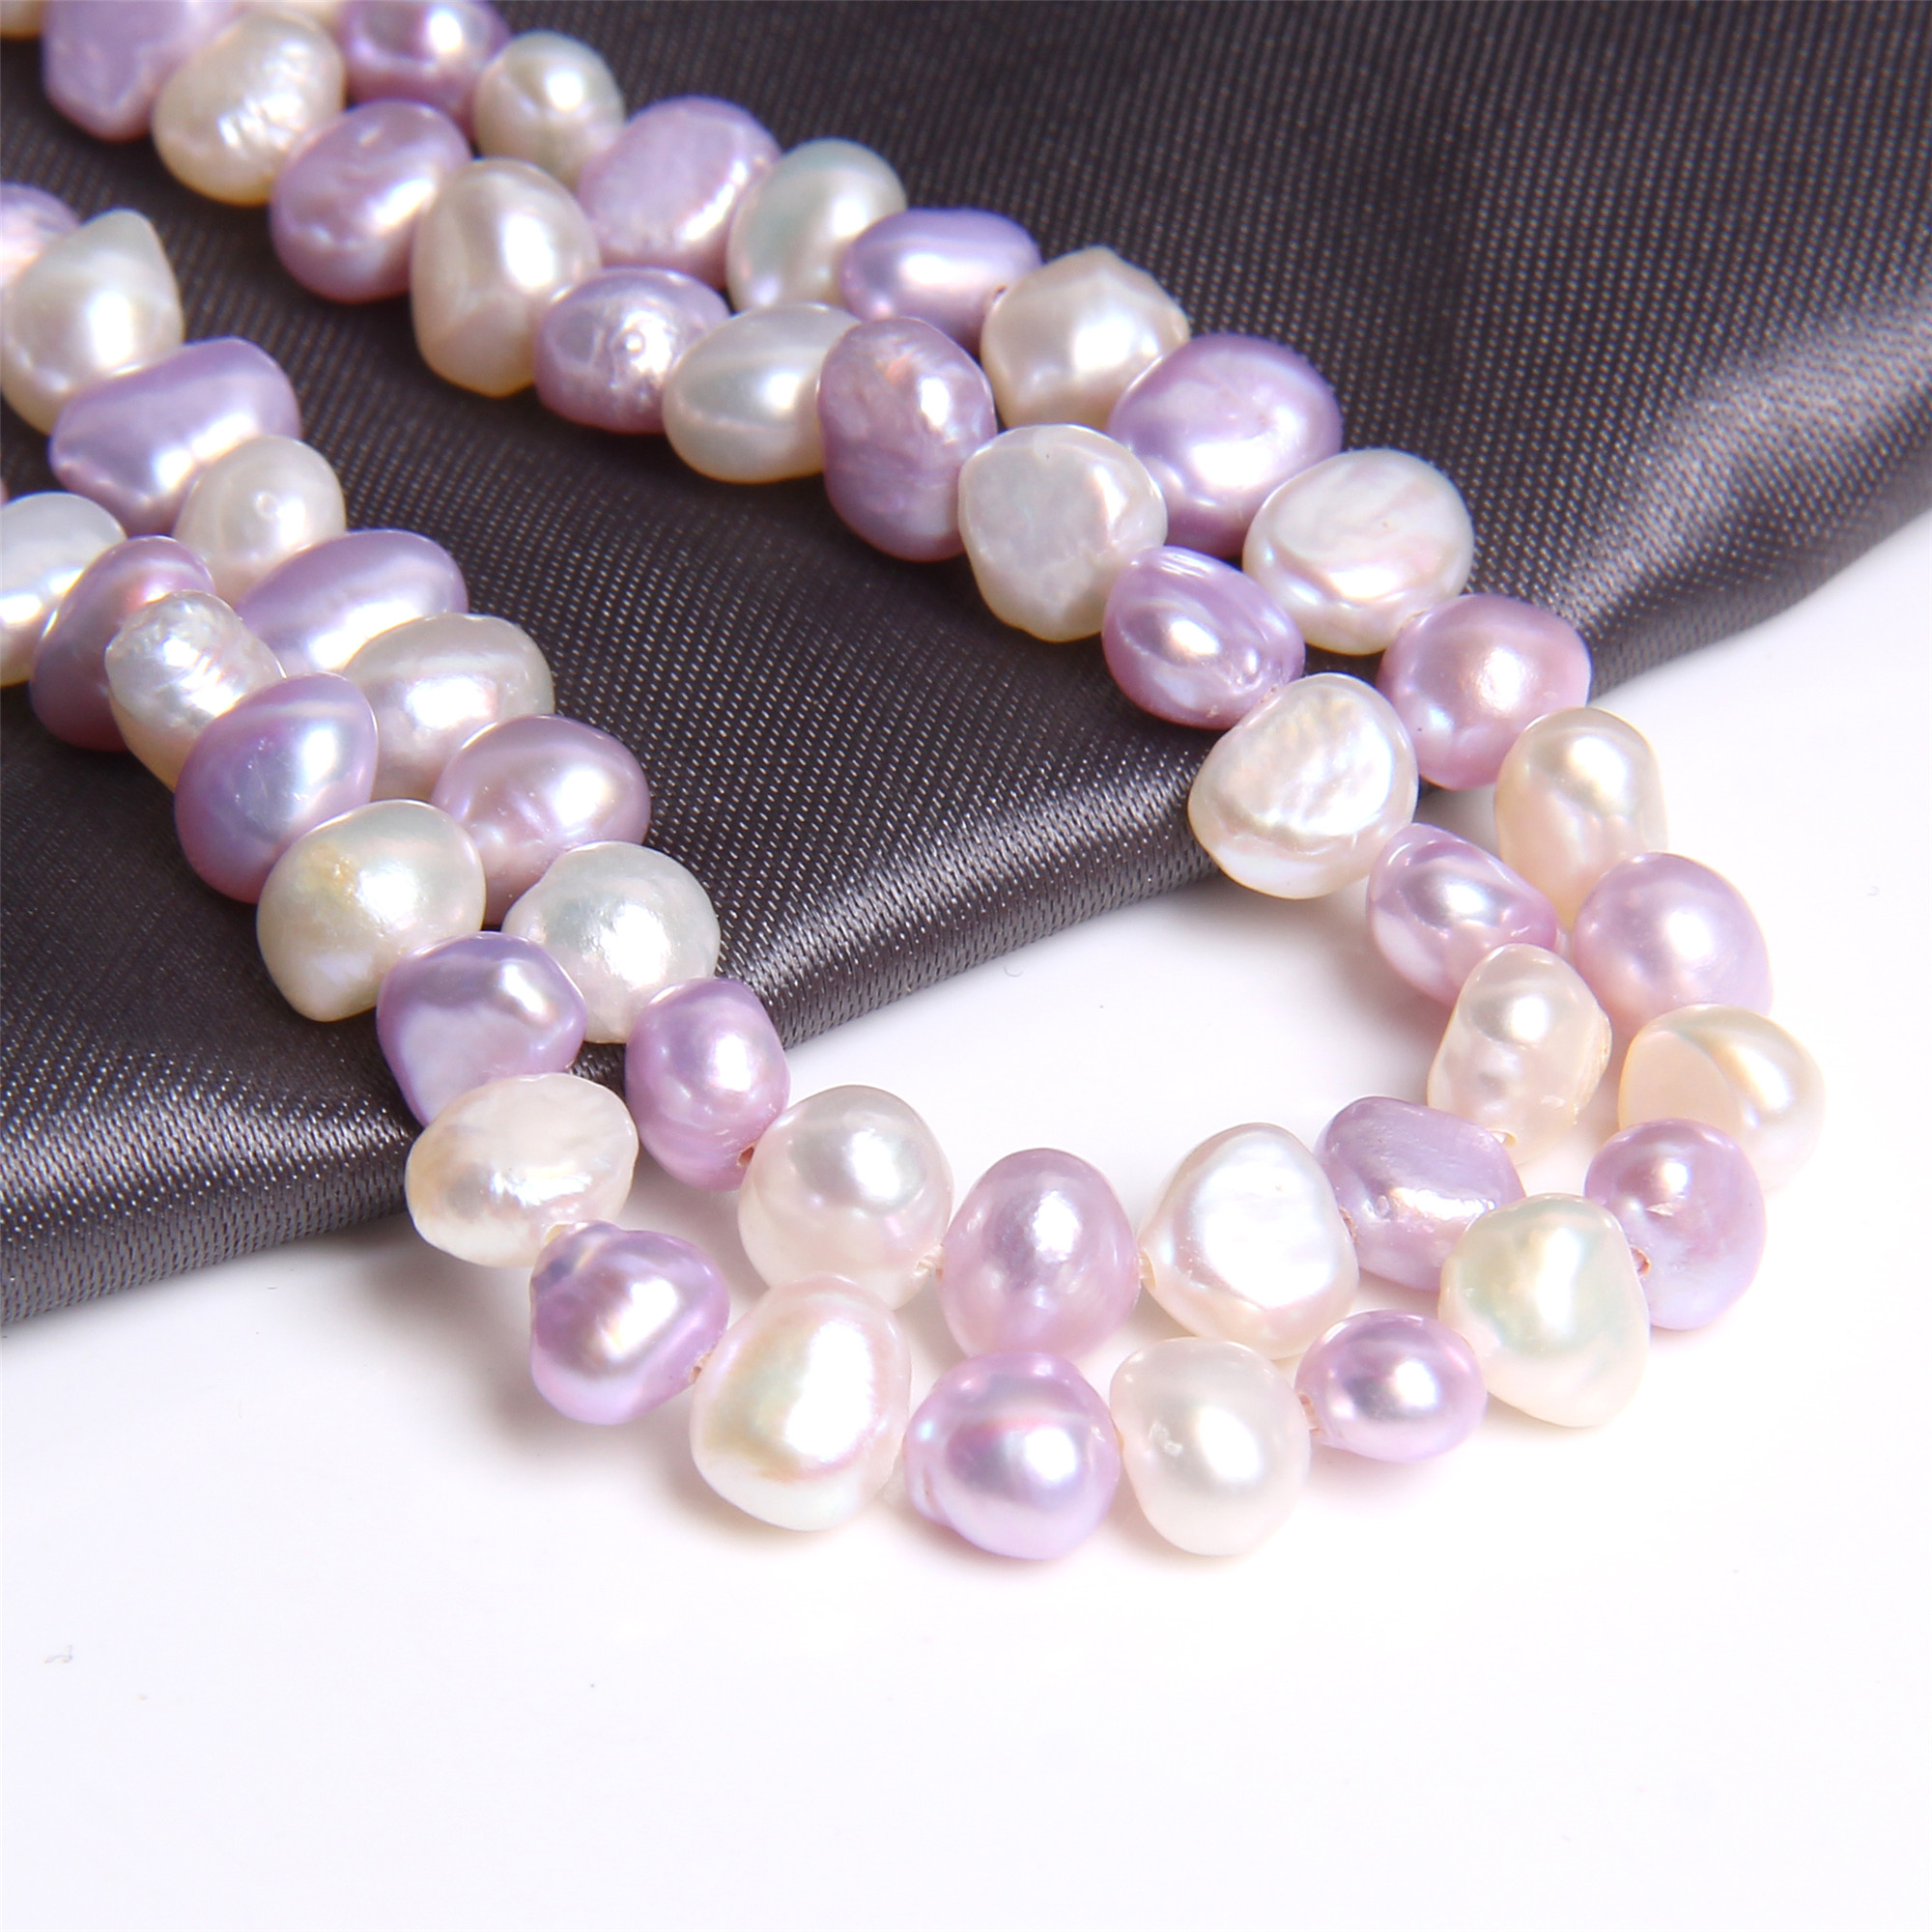 5-6mm Natural Baroque Pearls Multi Color Real Freshwater Pearl Potato Purple White Mix Loose Perle Beads For Jewelry Making 14